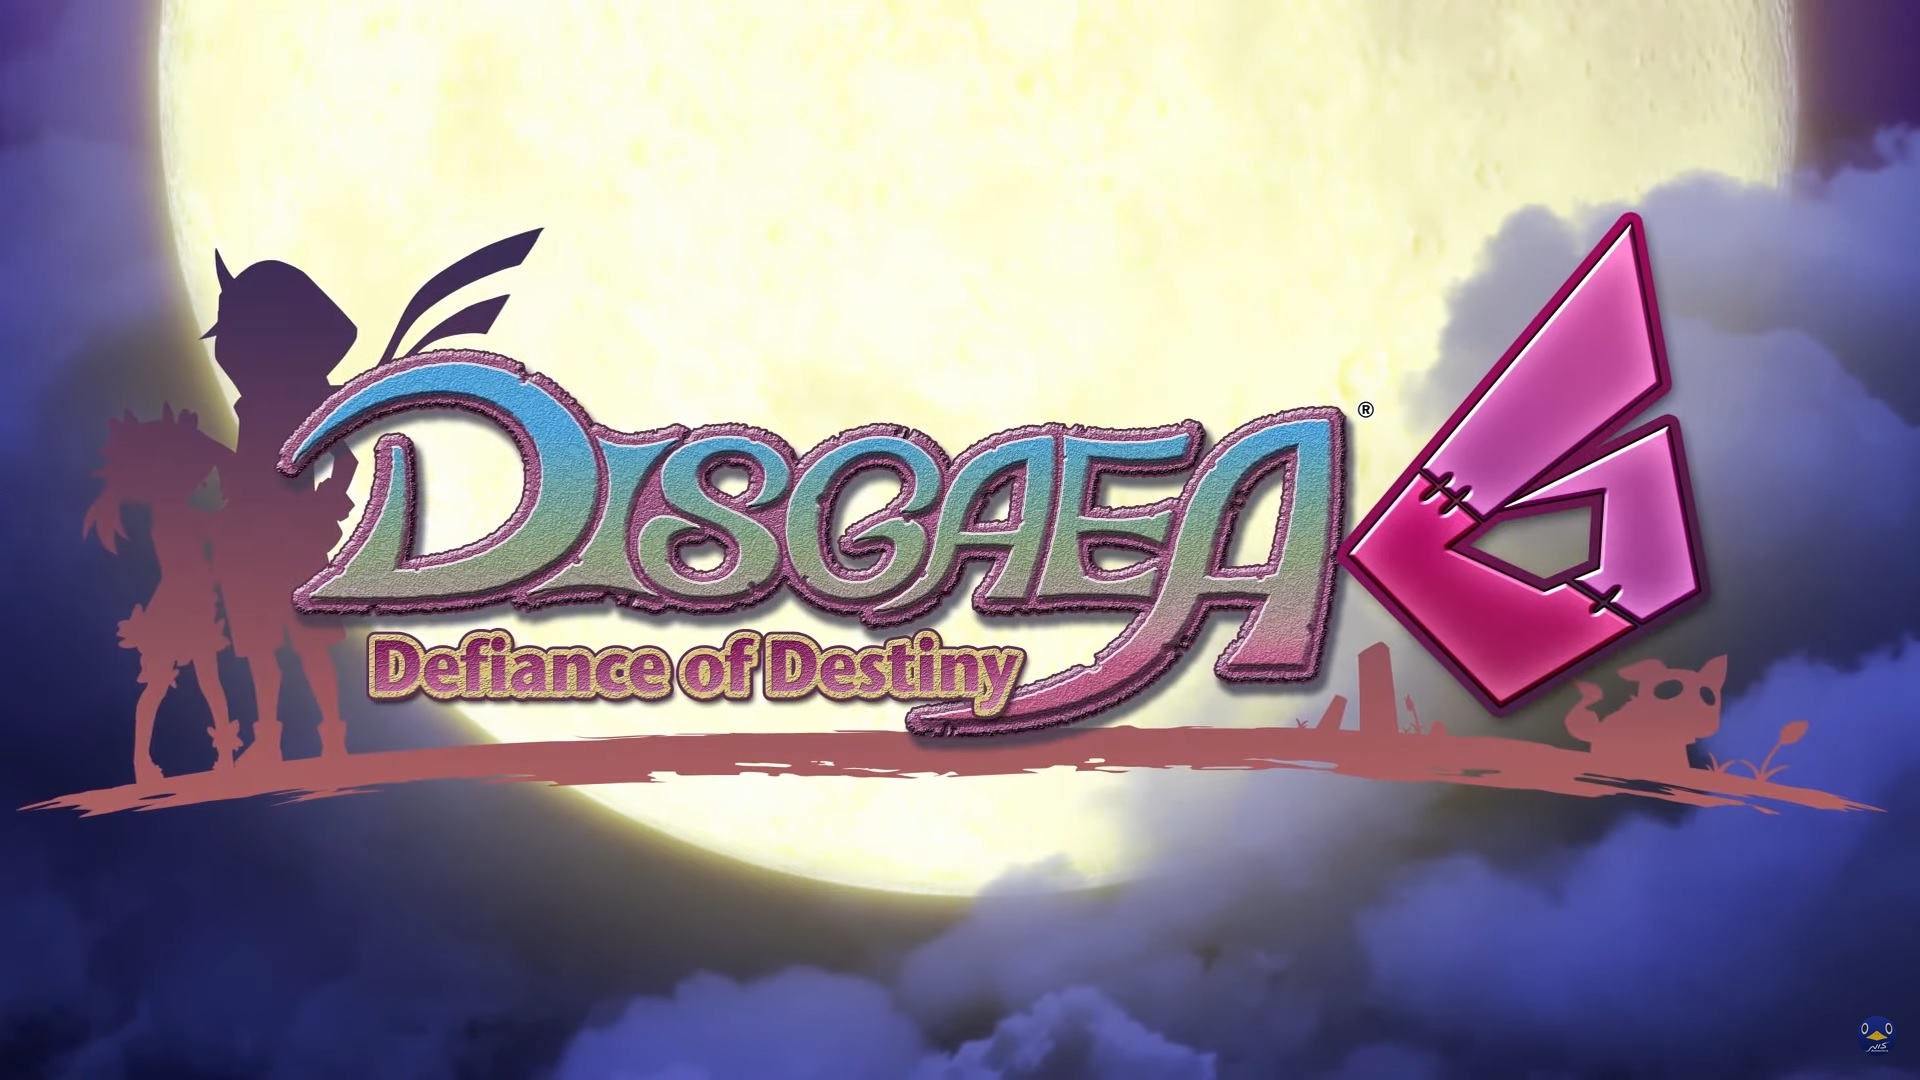 Disgaea 6 is a Nintendo Switch exclusive